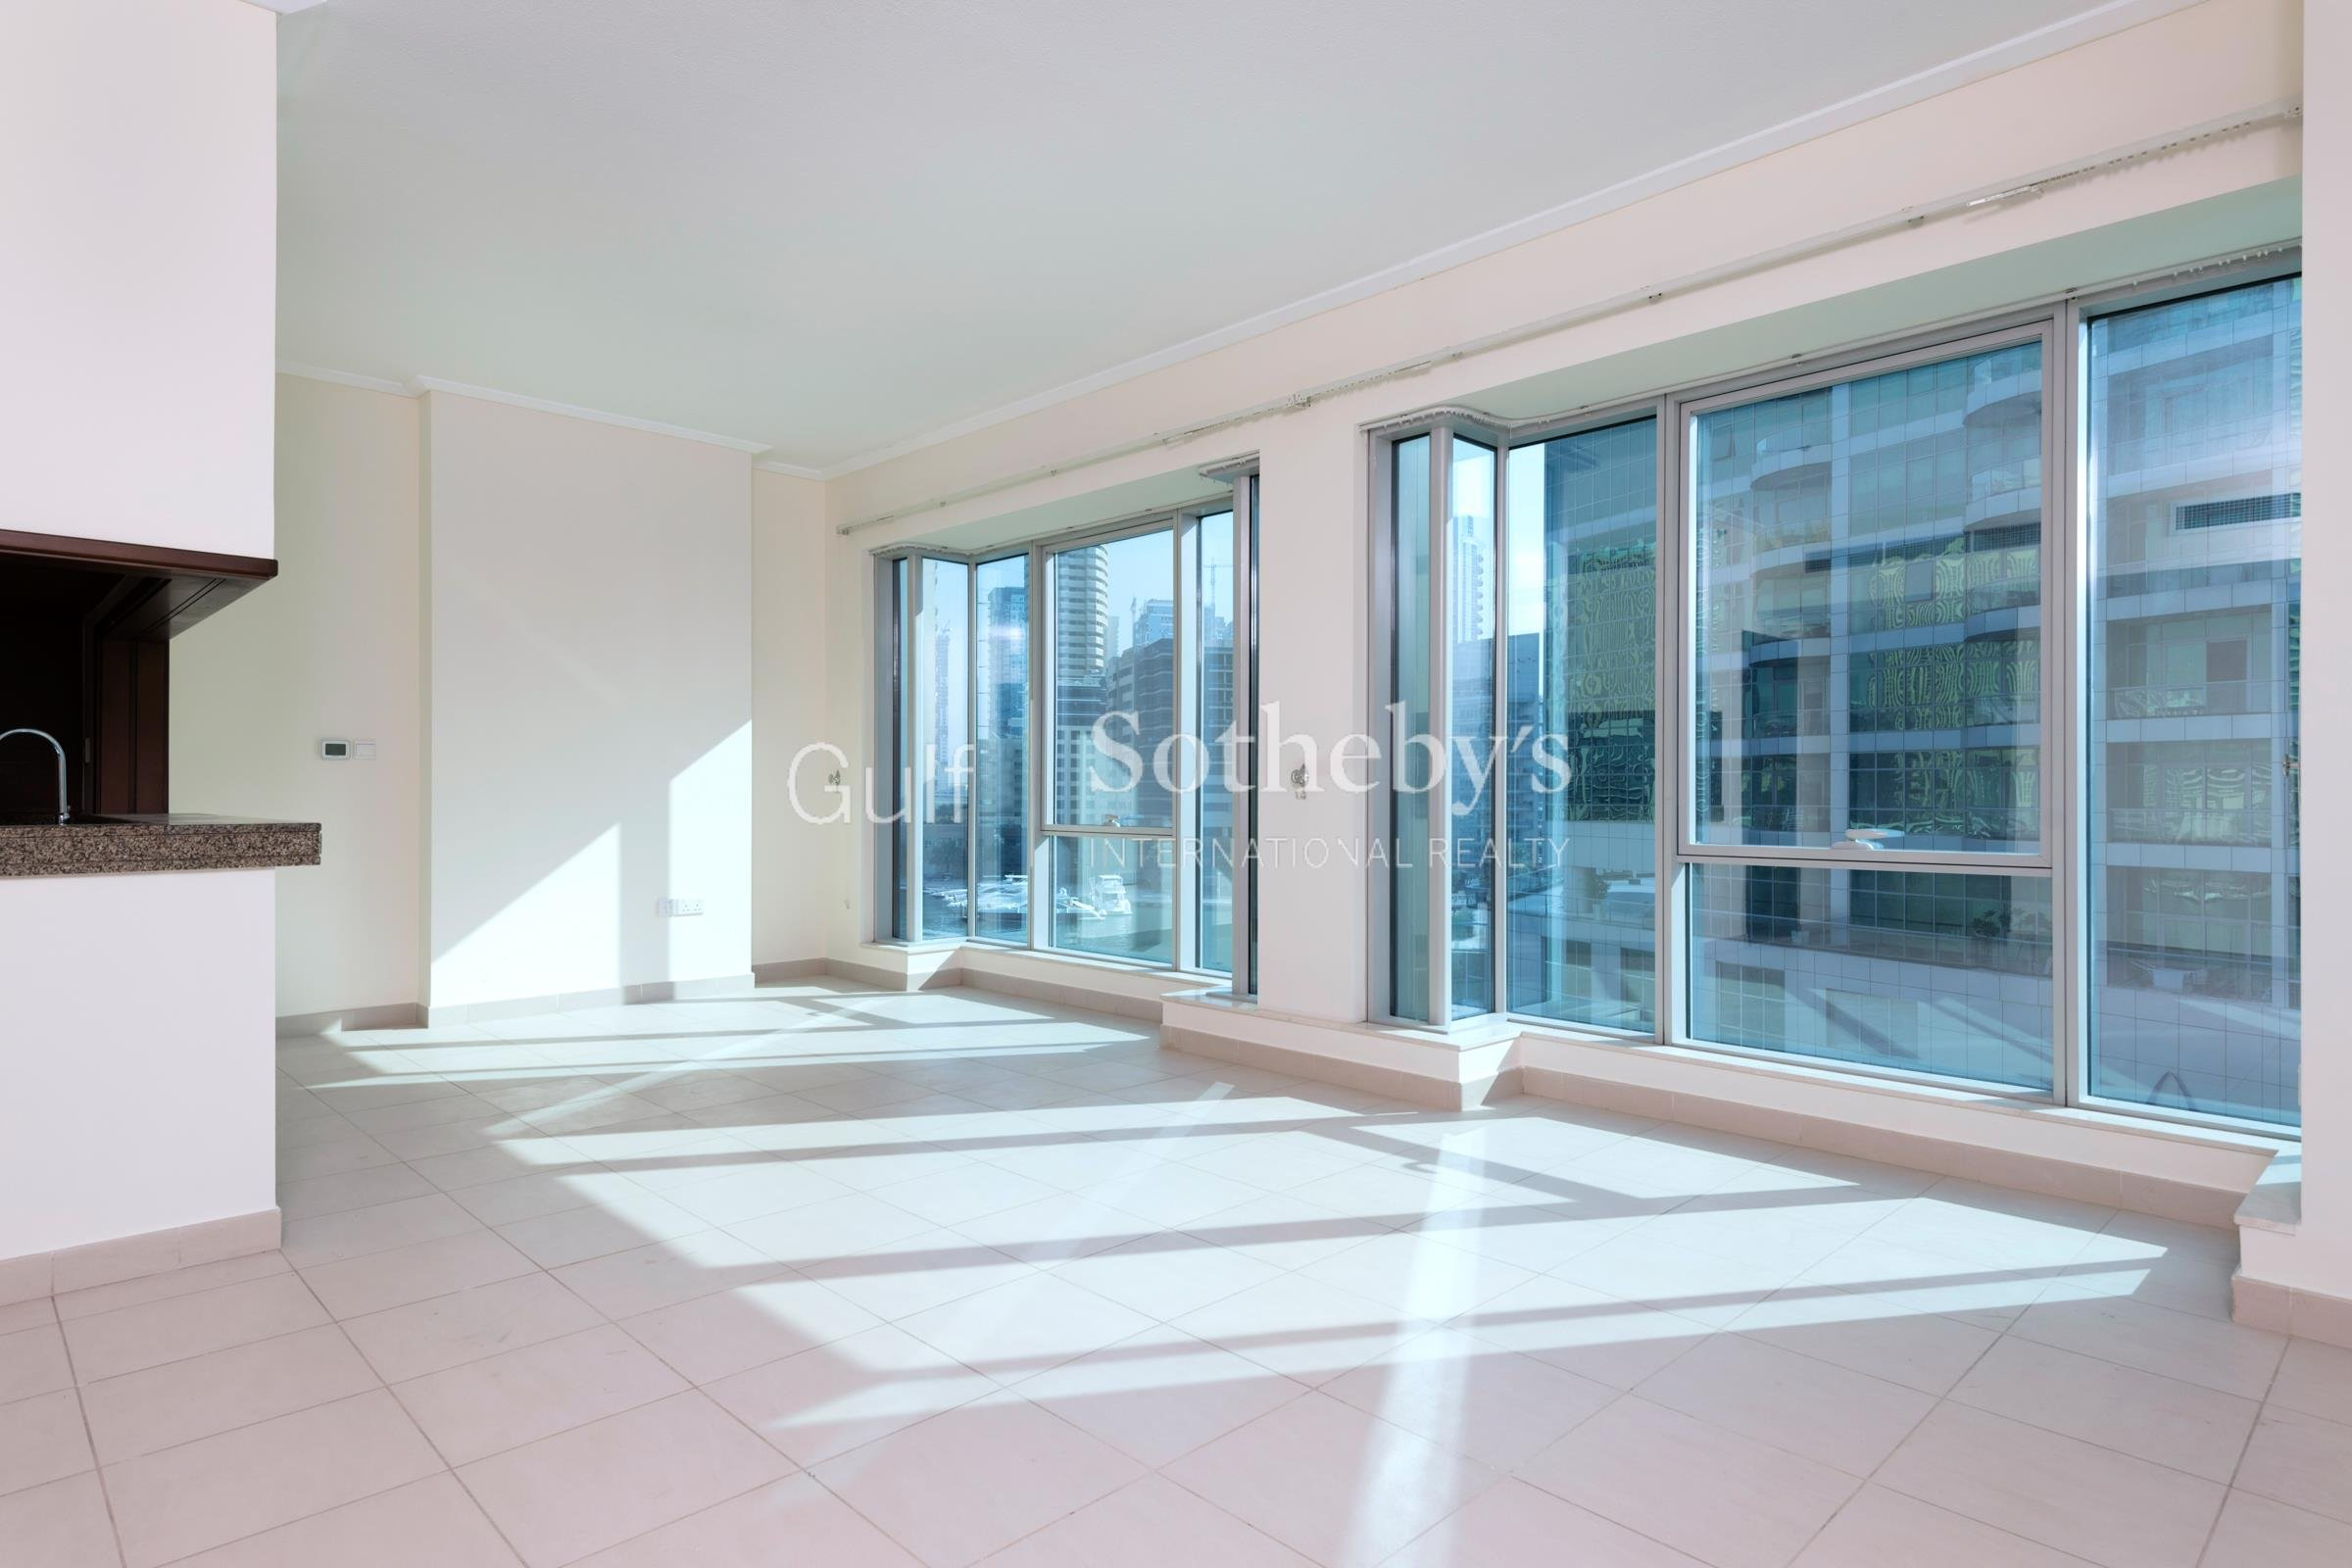 4592 ap2668 two bedroom two bathroom apartment for 2 bedroom apartments for sale in dubai